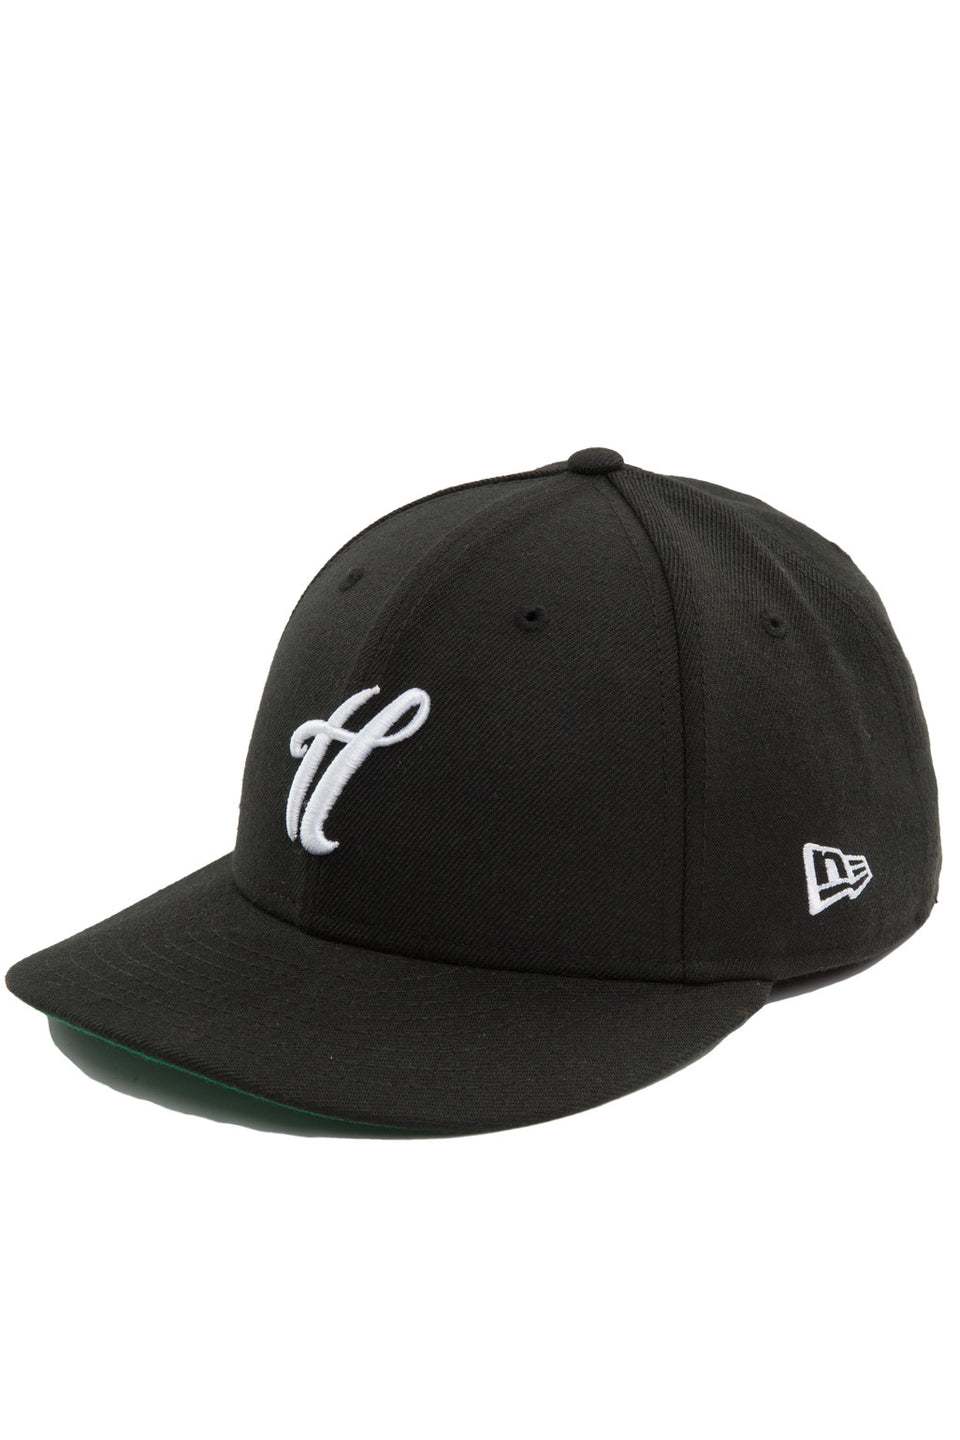 Relative New Era Fitted